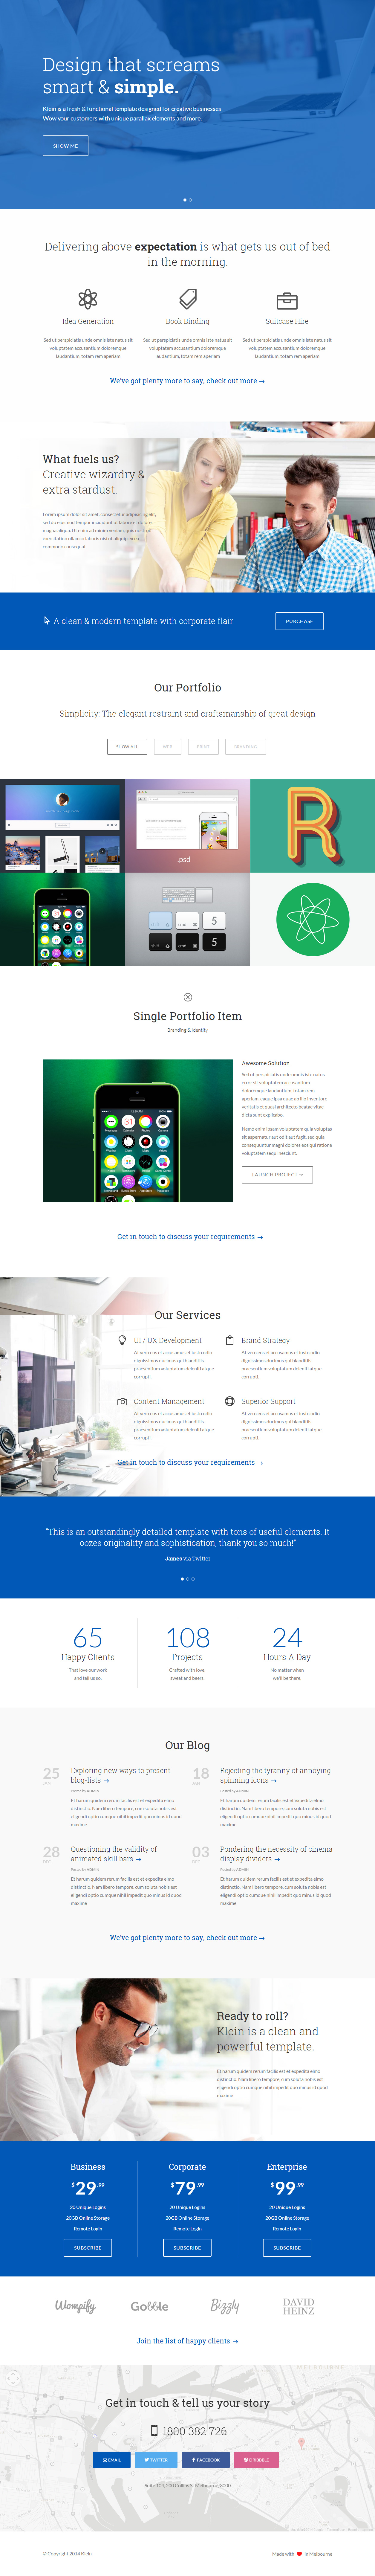 Klein premium responsive one page parallax html5 template for Free html5 parallax scrolling template